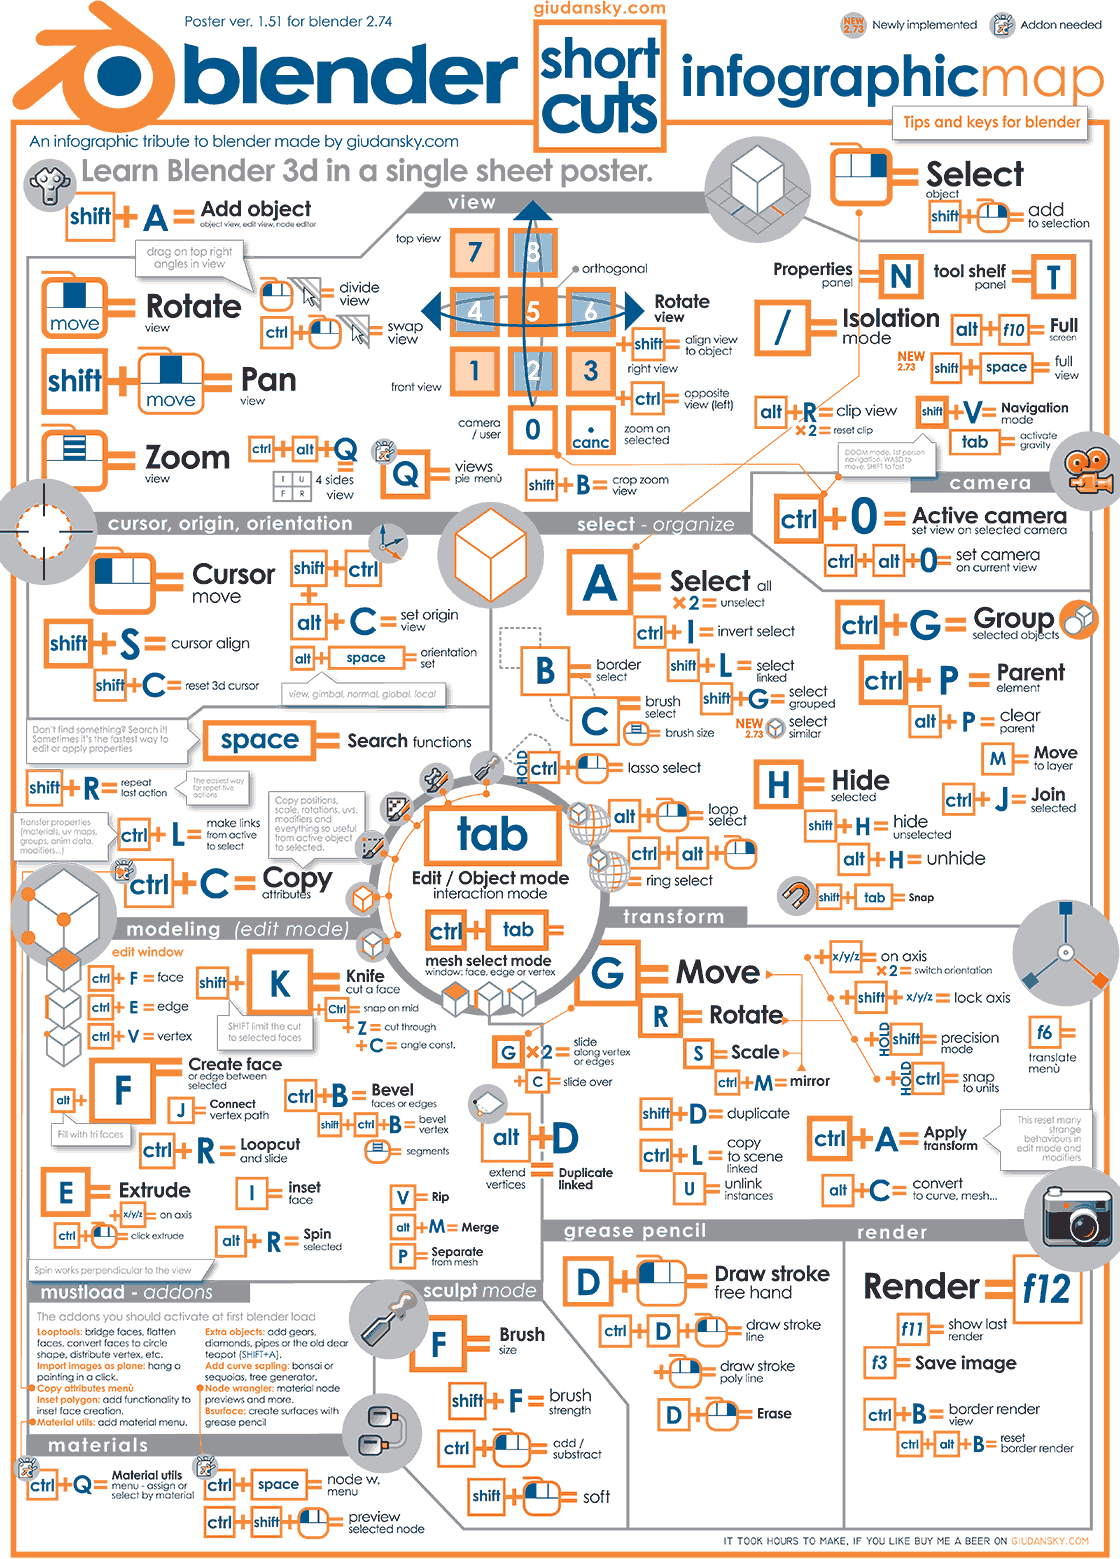 Infographic for Blender 3d 2.74 | Blender Infographics | Pinterest ...